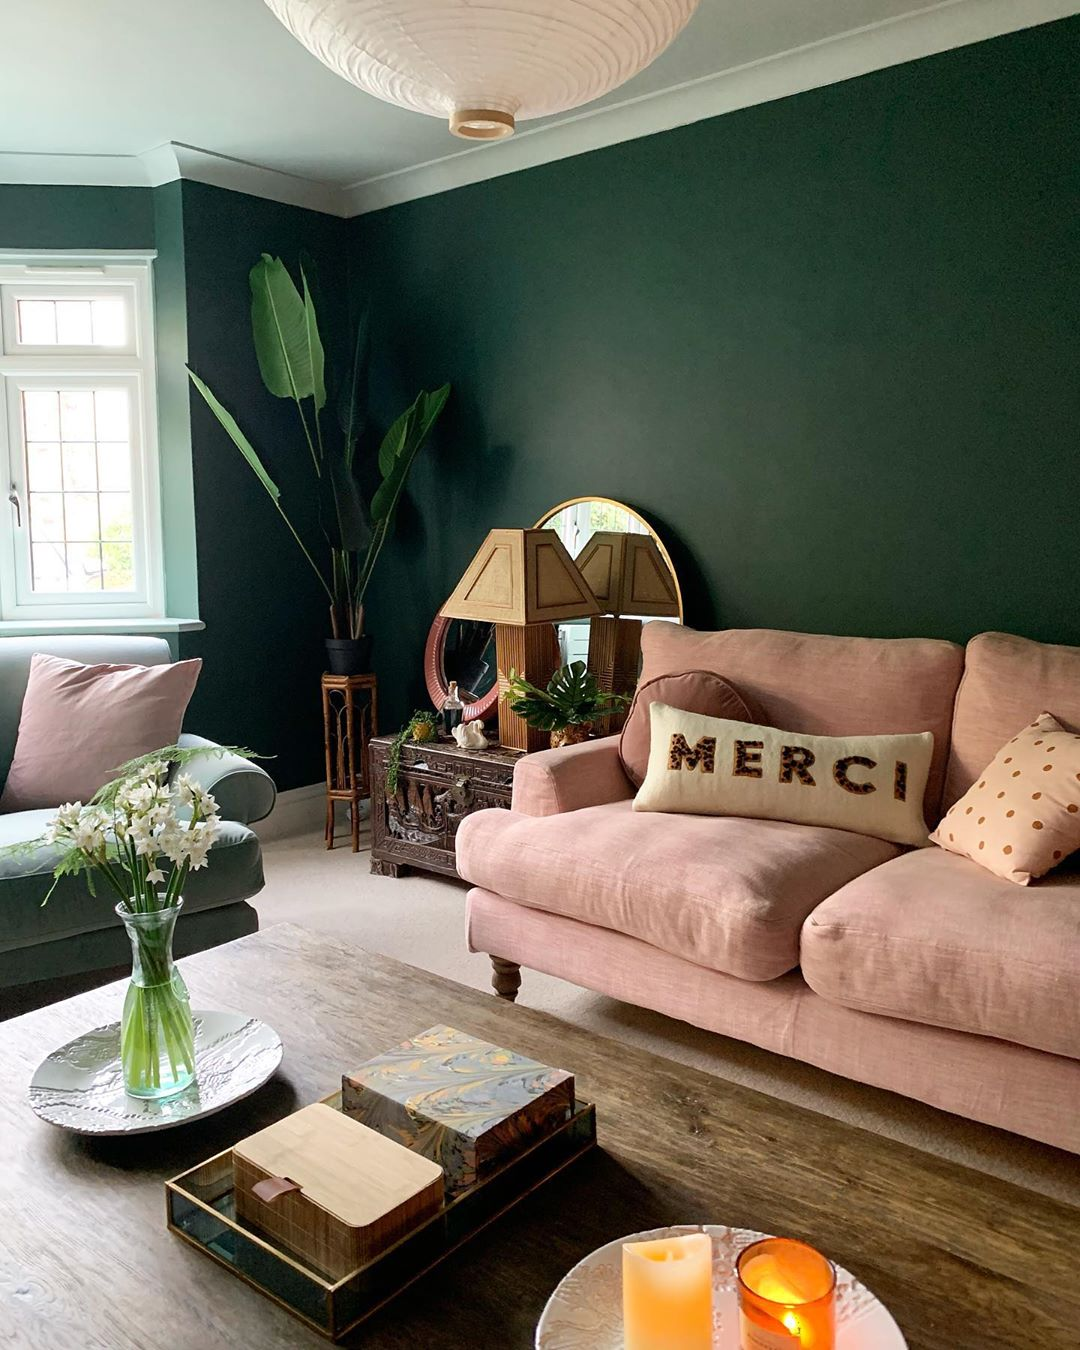 interior design tips - complementary colours in room